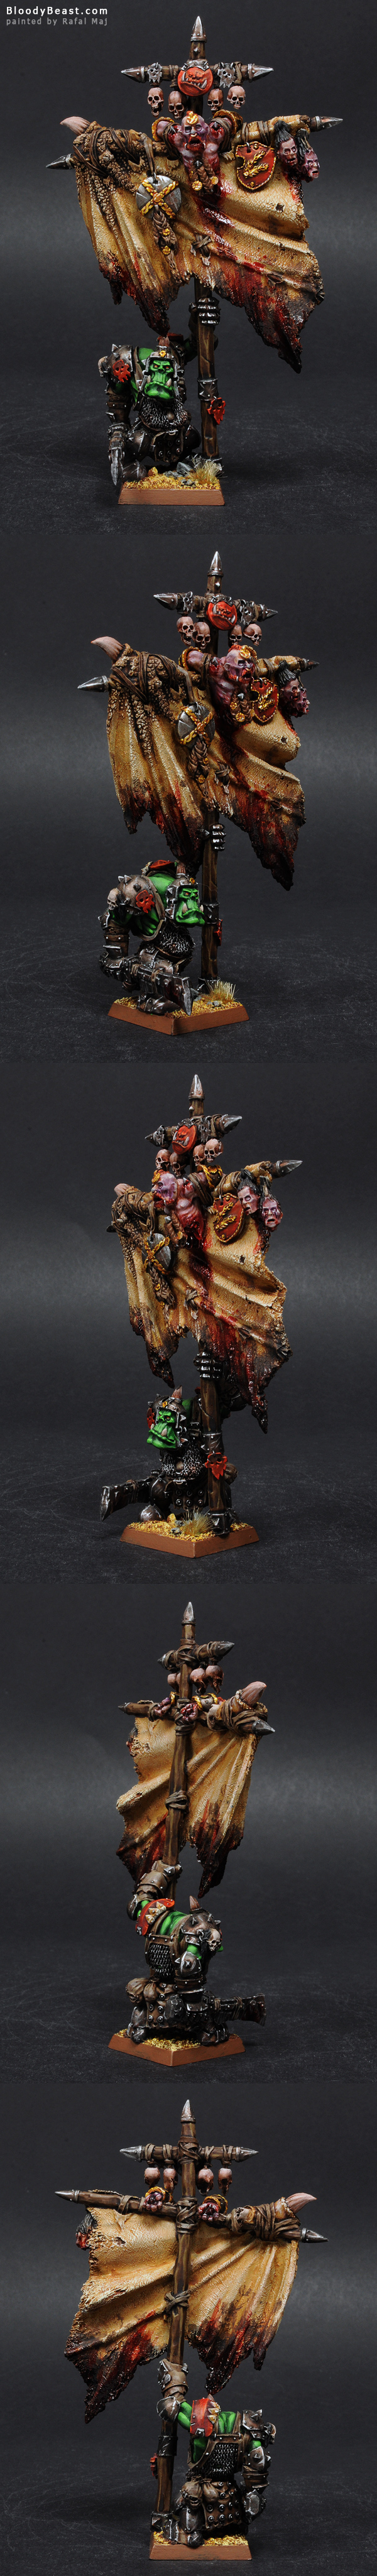 Forge World Orc Battle Standard Bearer painted by Rafal Maj (BloodyBeast.com)